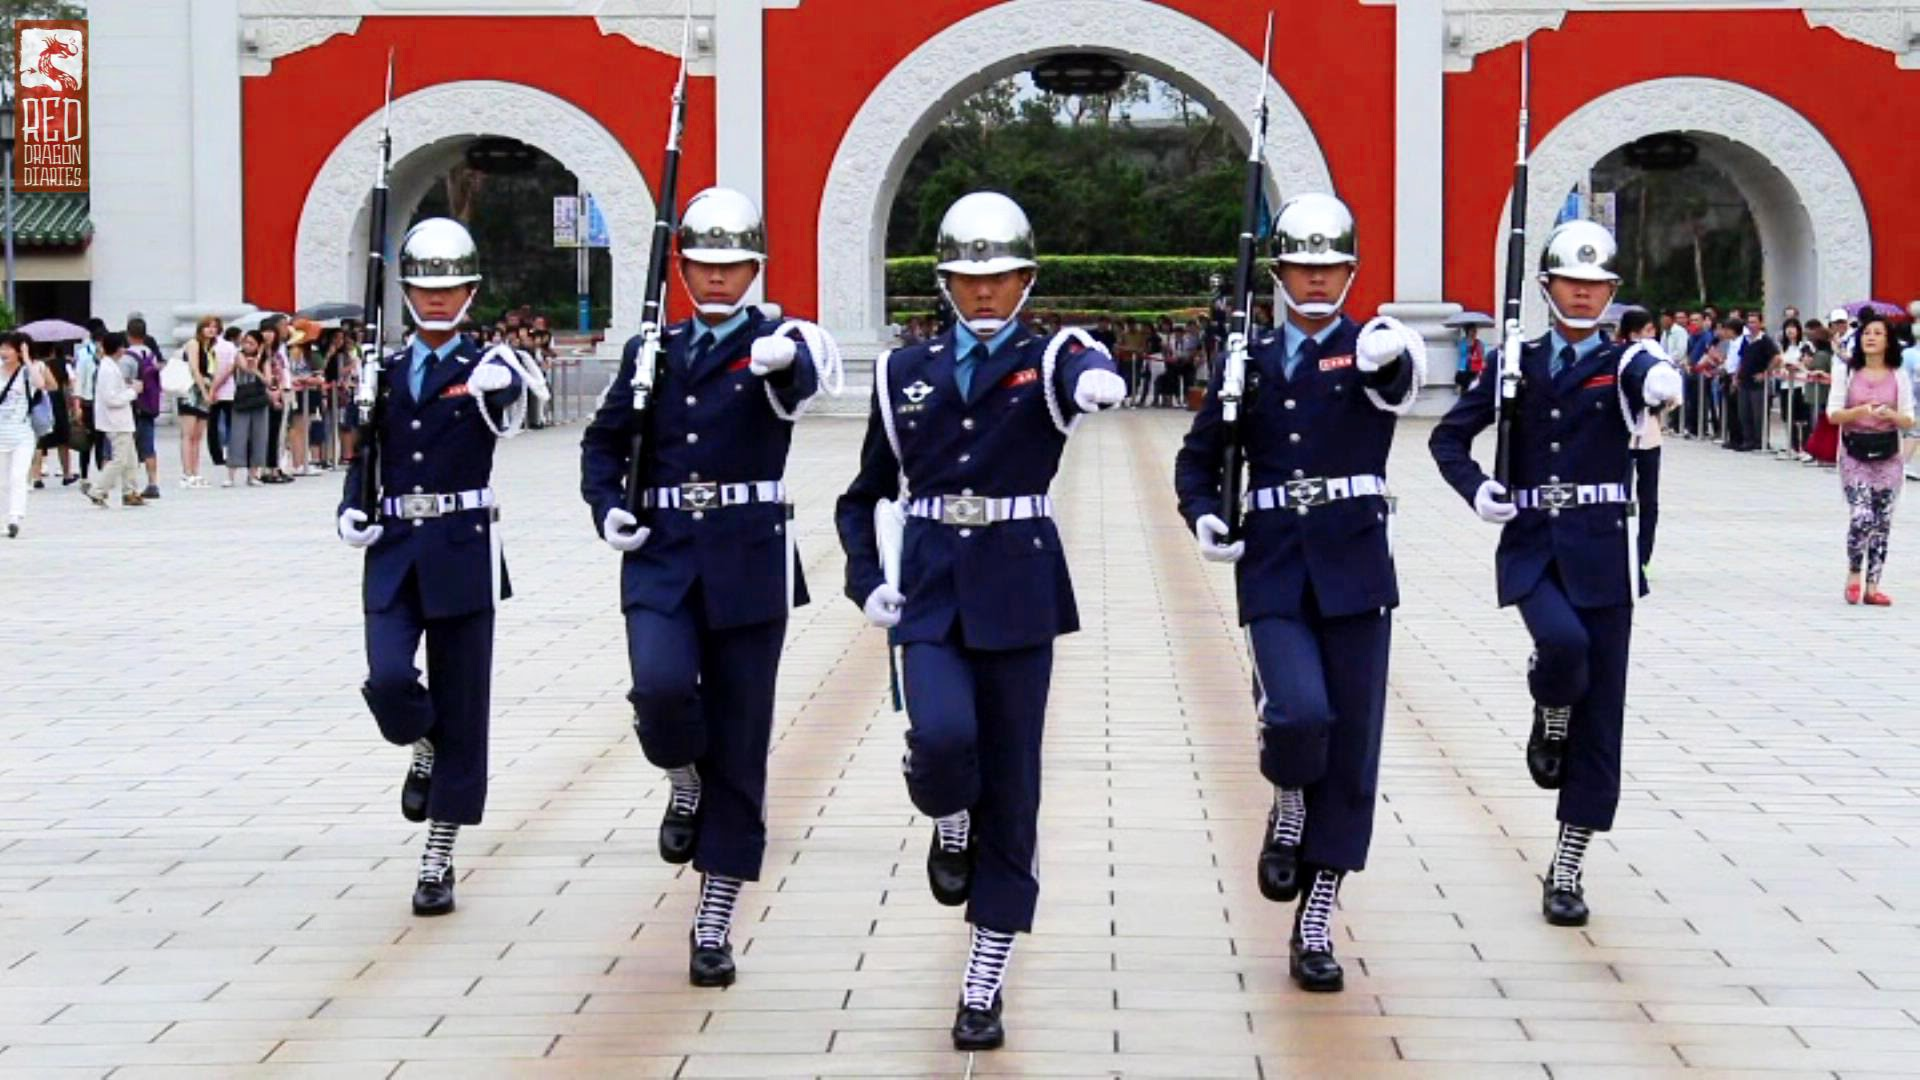 Guards photo